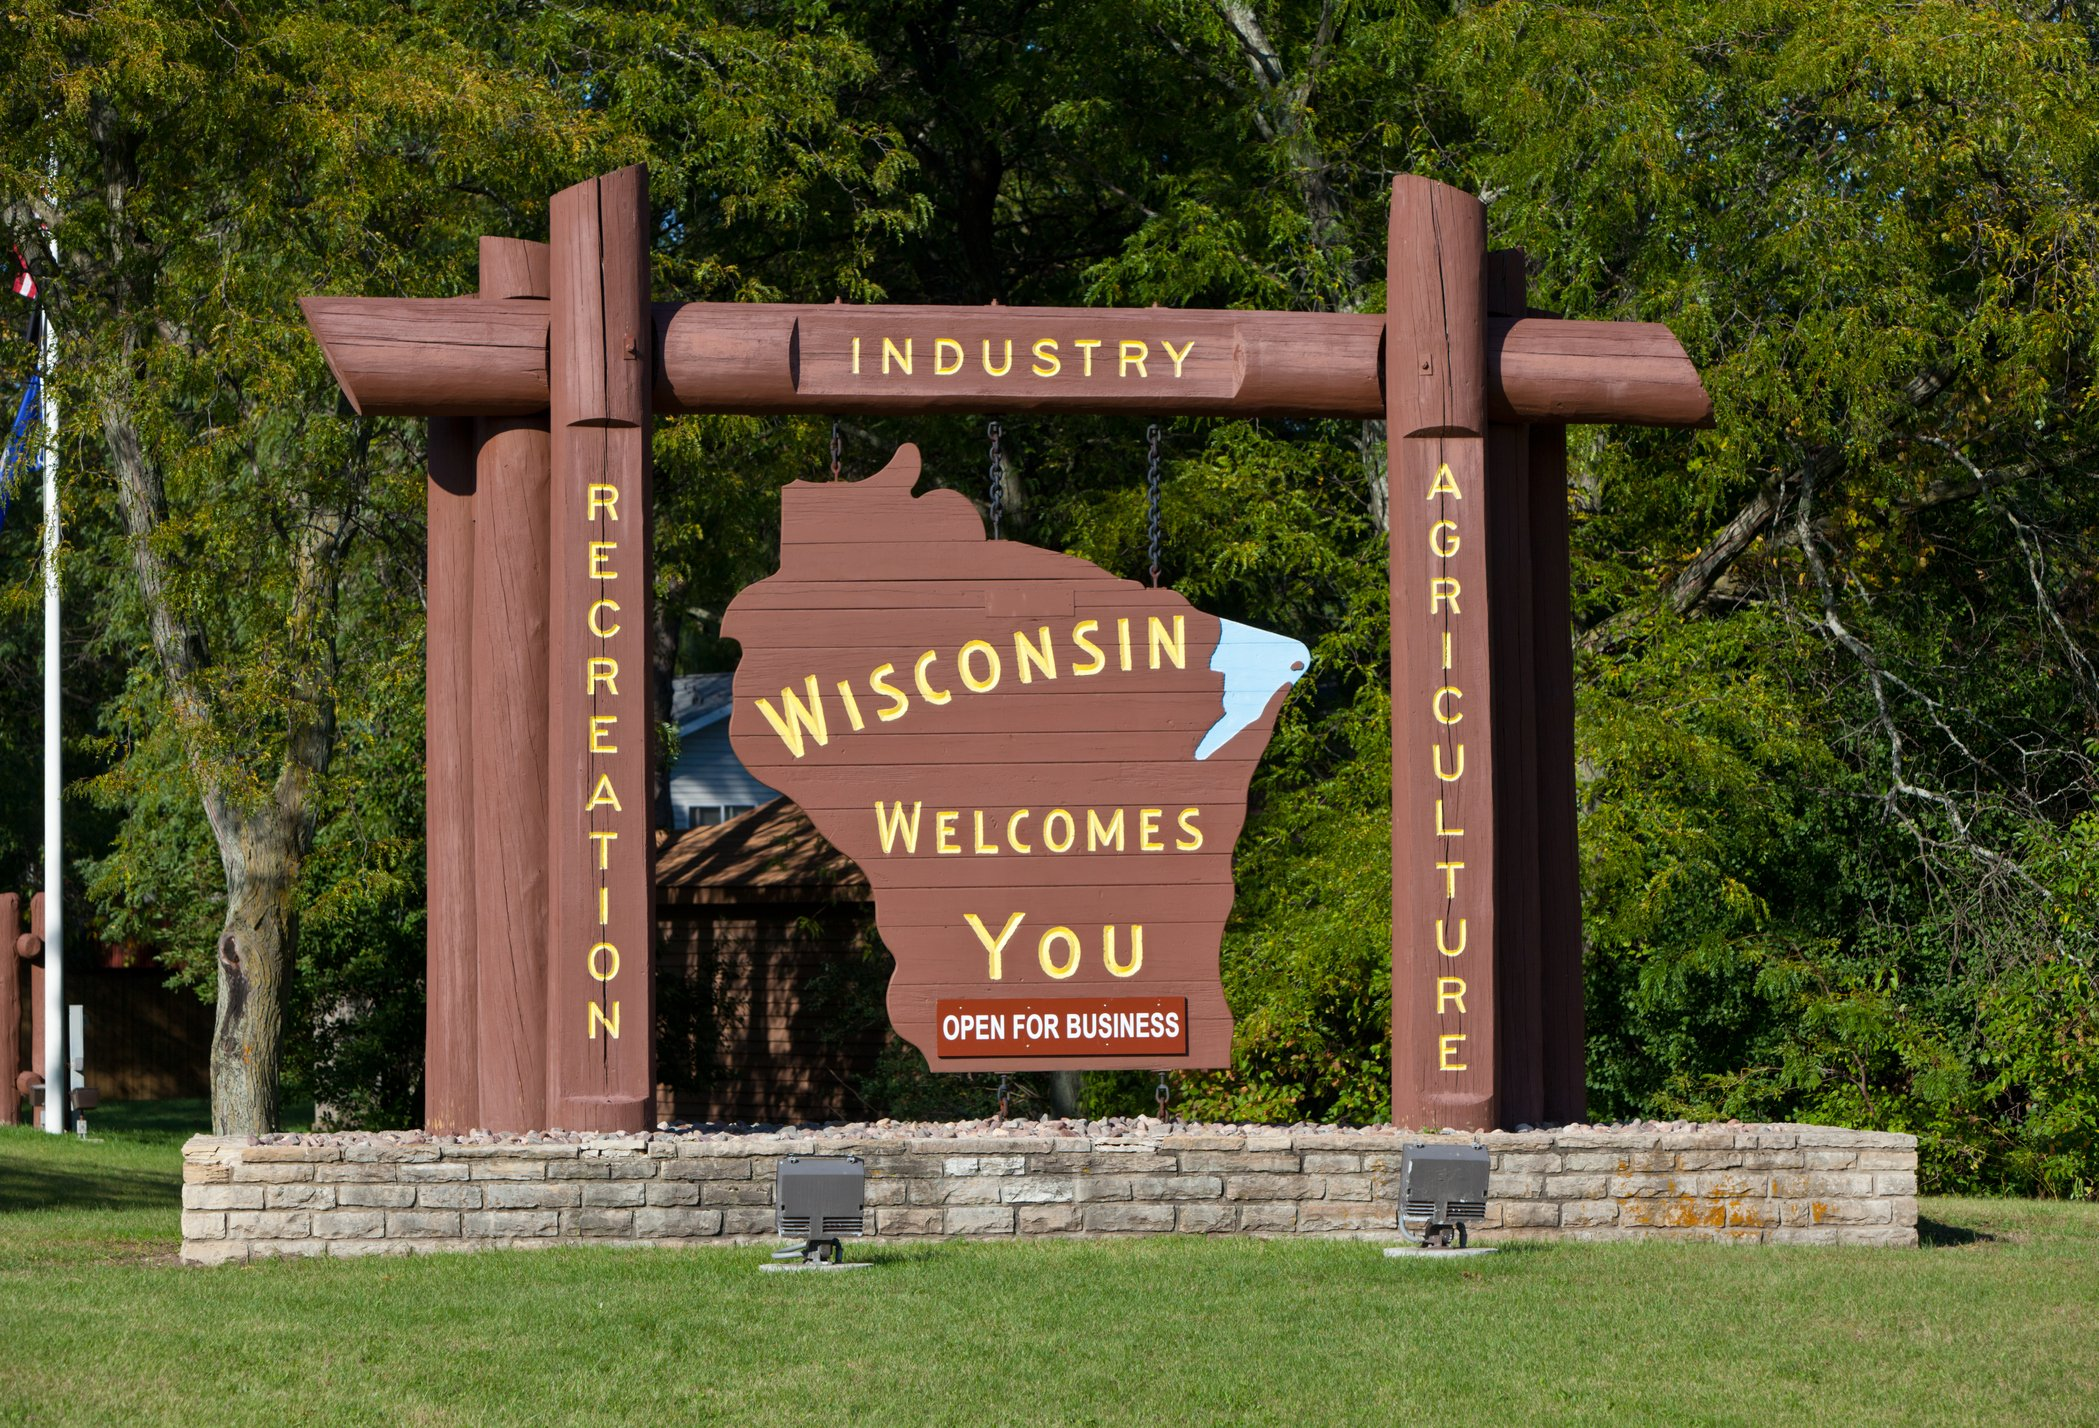 Slide 50 of 51: The Wisconsin sign is, unfortunately, missing cheese, but its charm makes up for the loss.